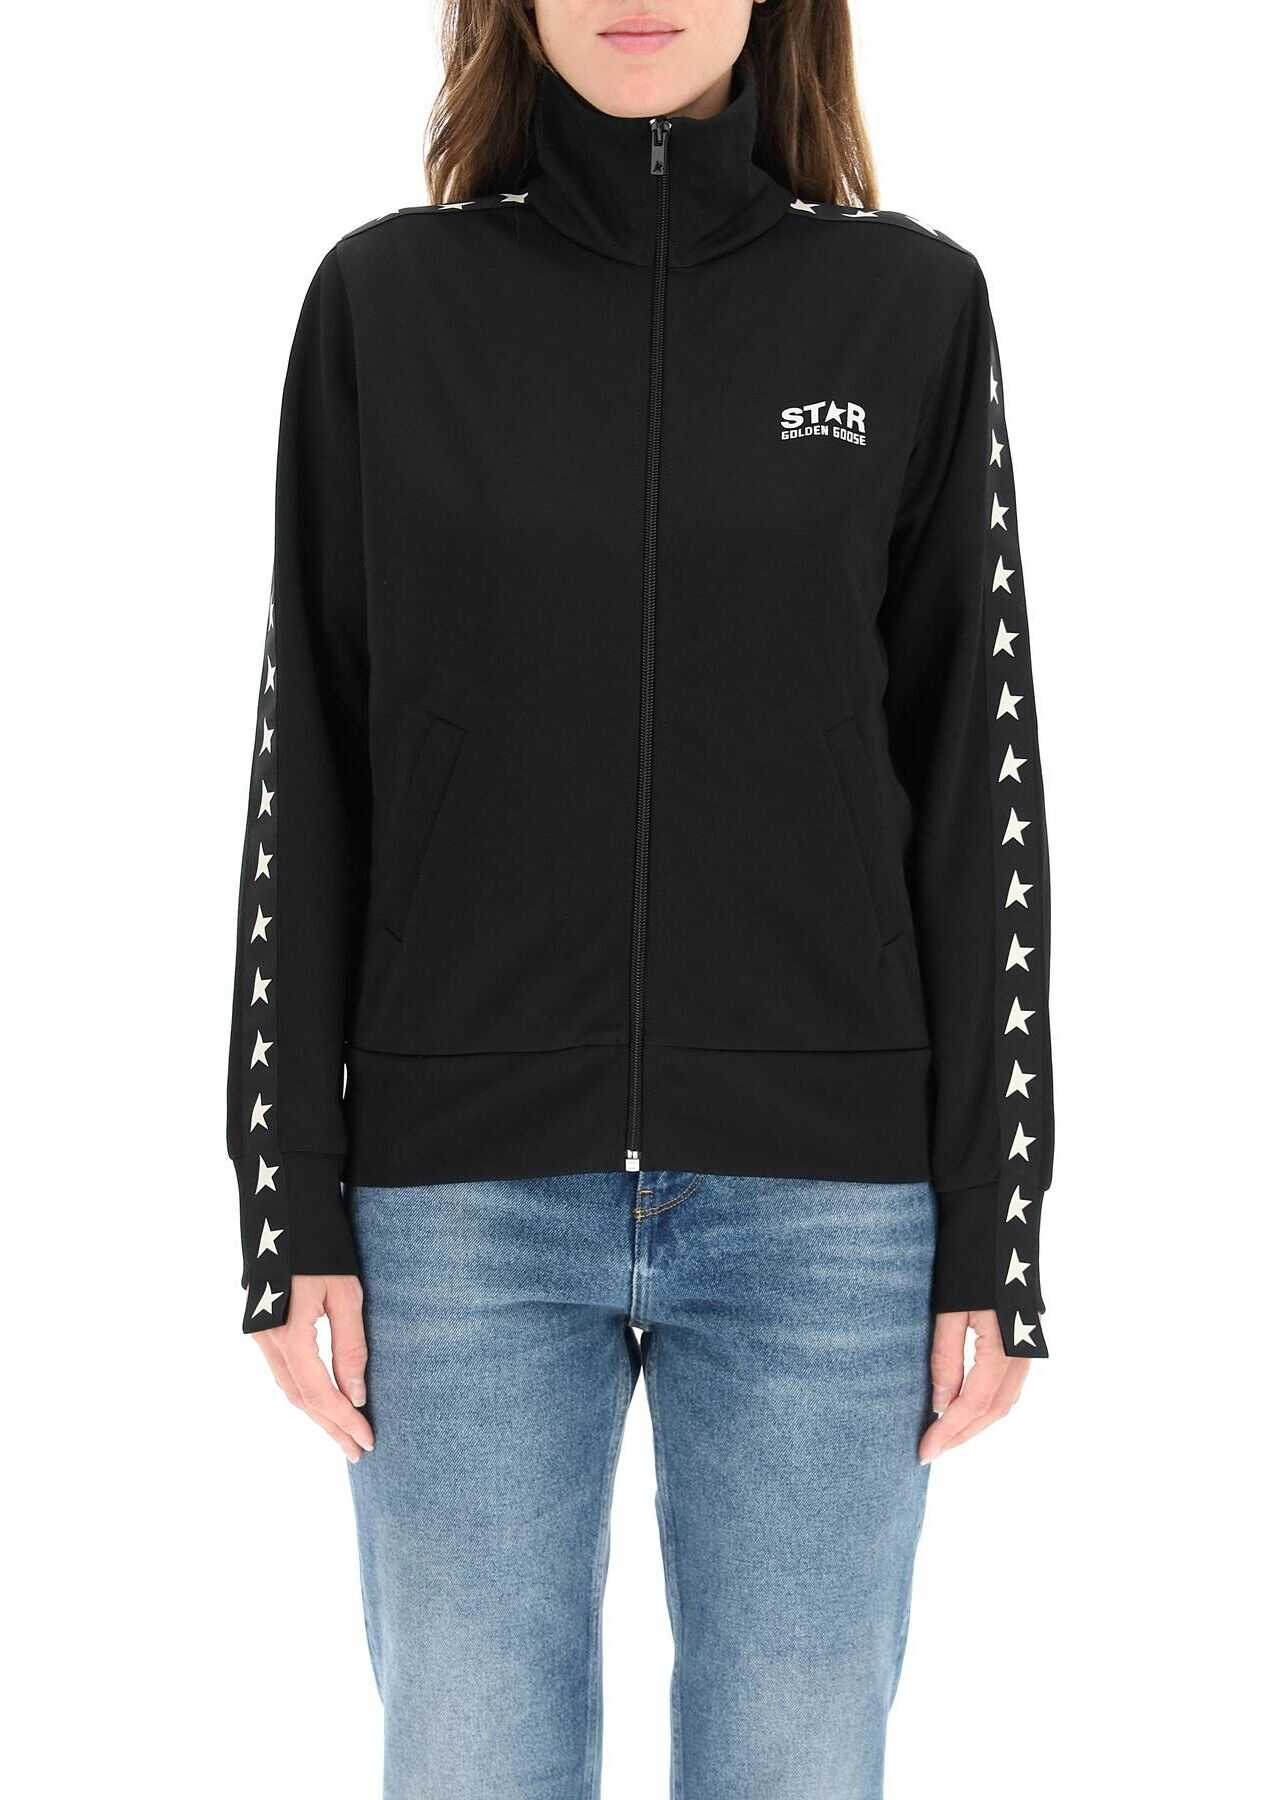 Golden Goose Denise Sweatshirt With Zip And Bands With Stars GWP00875 P000520 BLACK WHITE image0